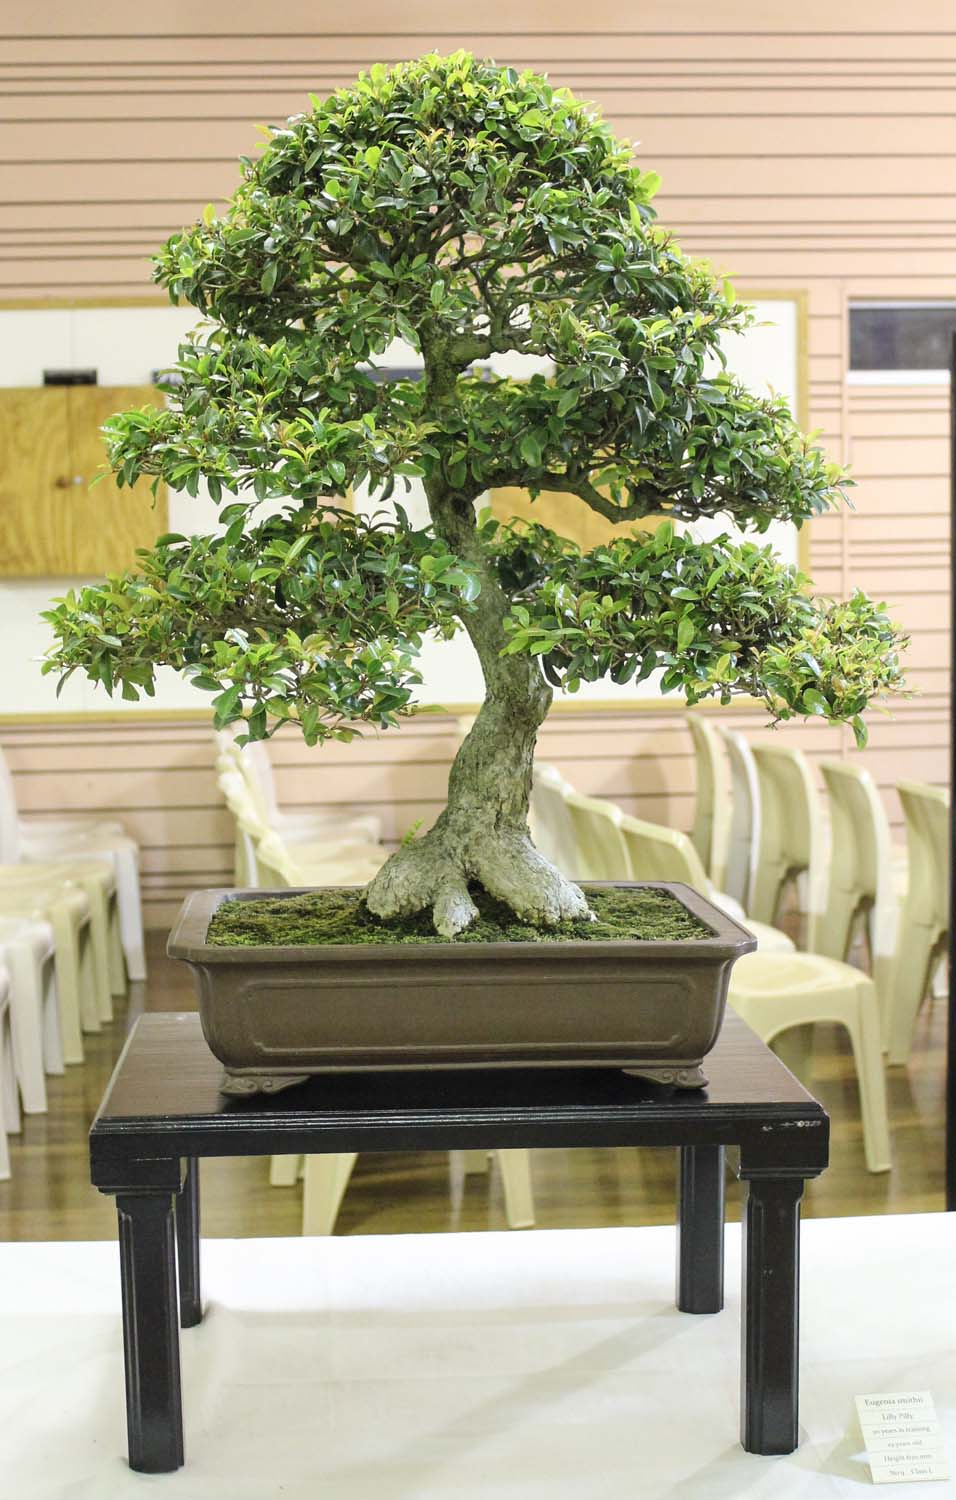 Redlands Bonsai Society 2015 Annual Bonsai Show More Pictures